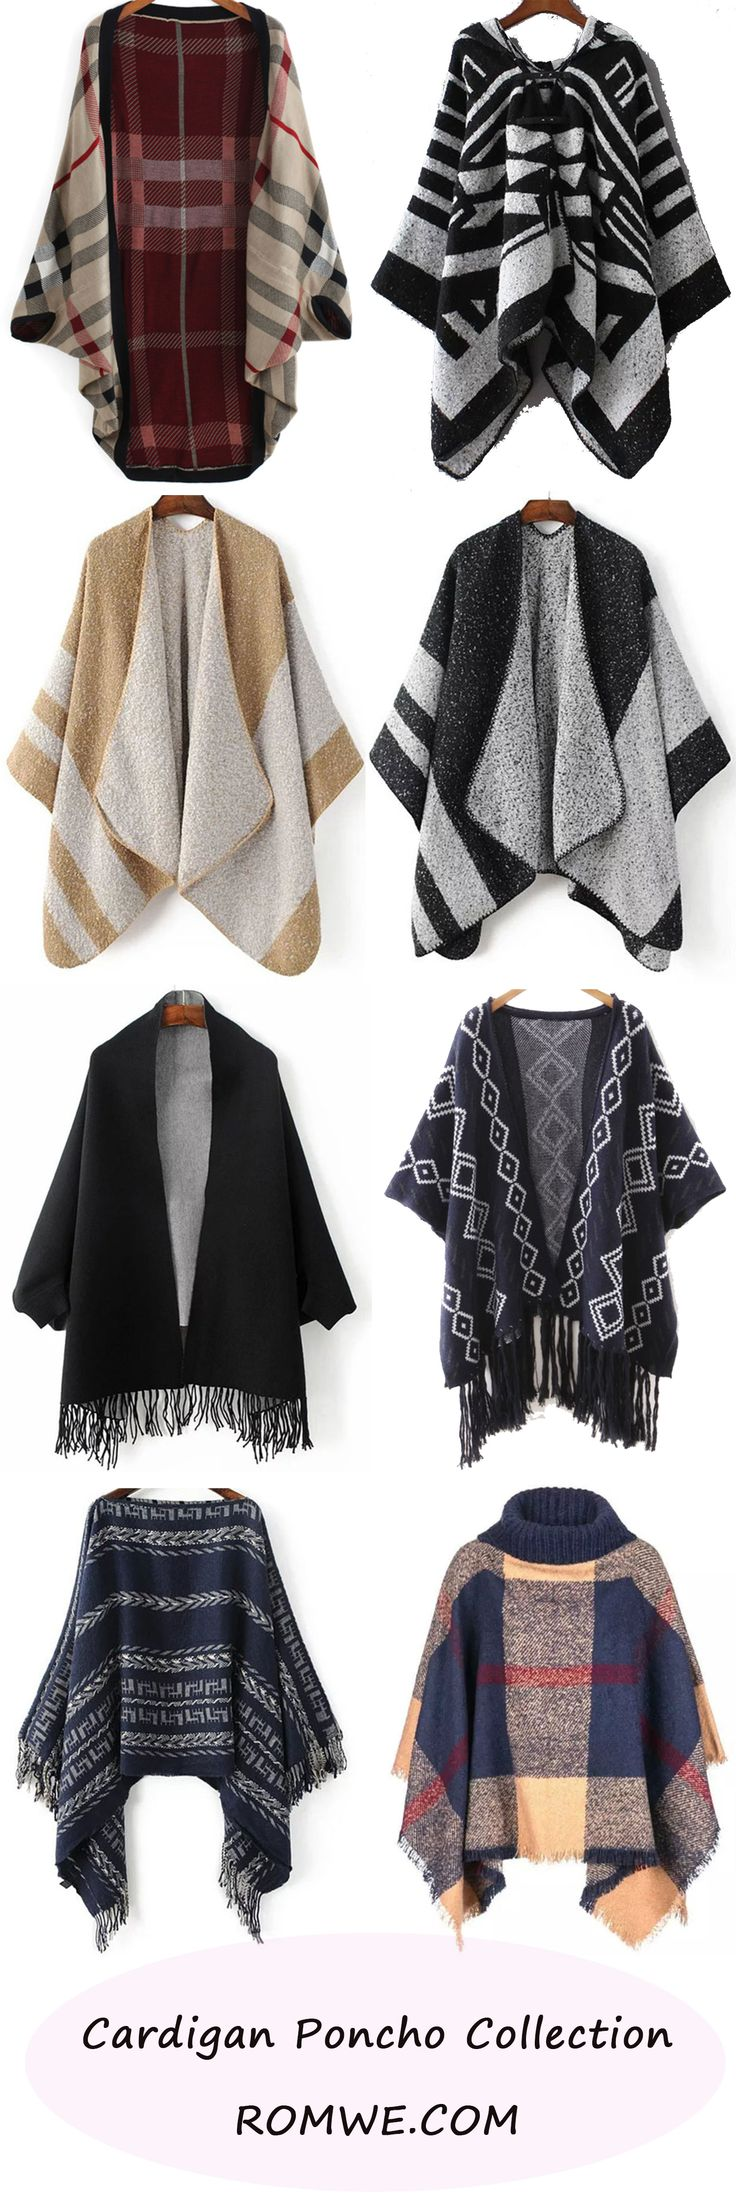 Cardigan Poncho Collection 2016 - romwe.com